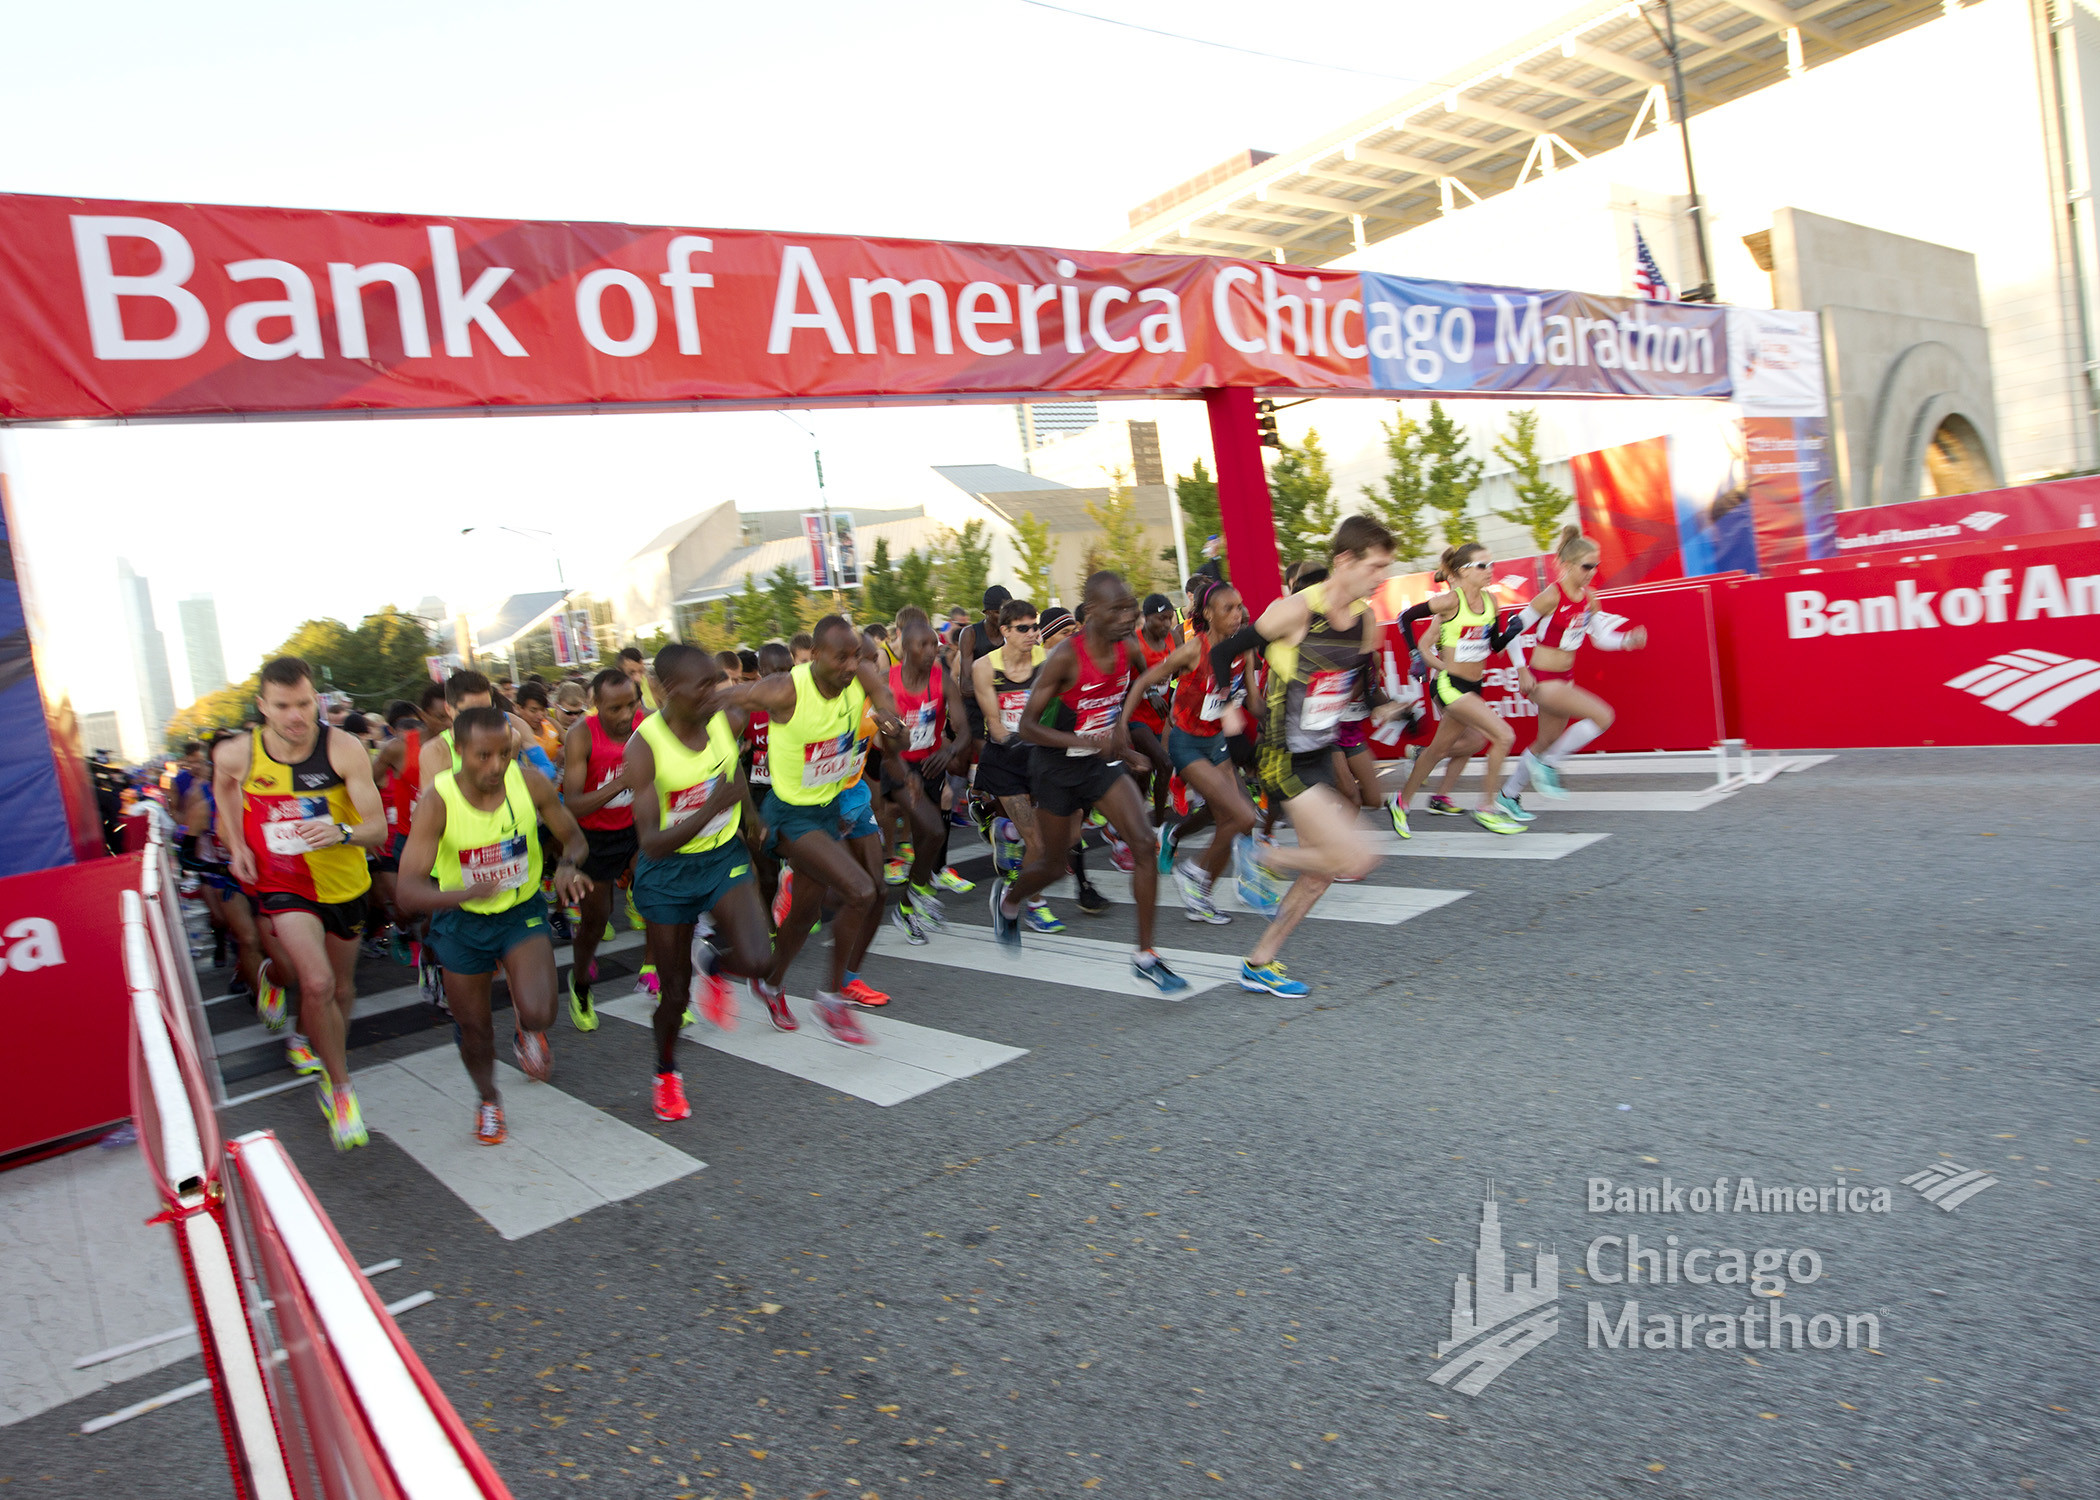 In 2018 the Bank of America Chicago Marathon Generated Record $378M for City's Economy